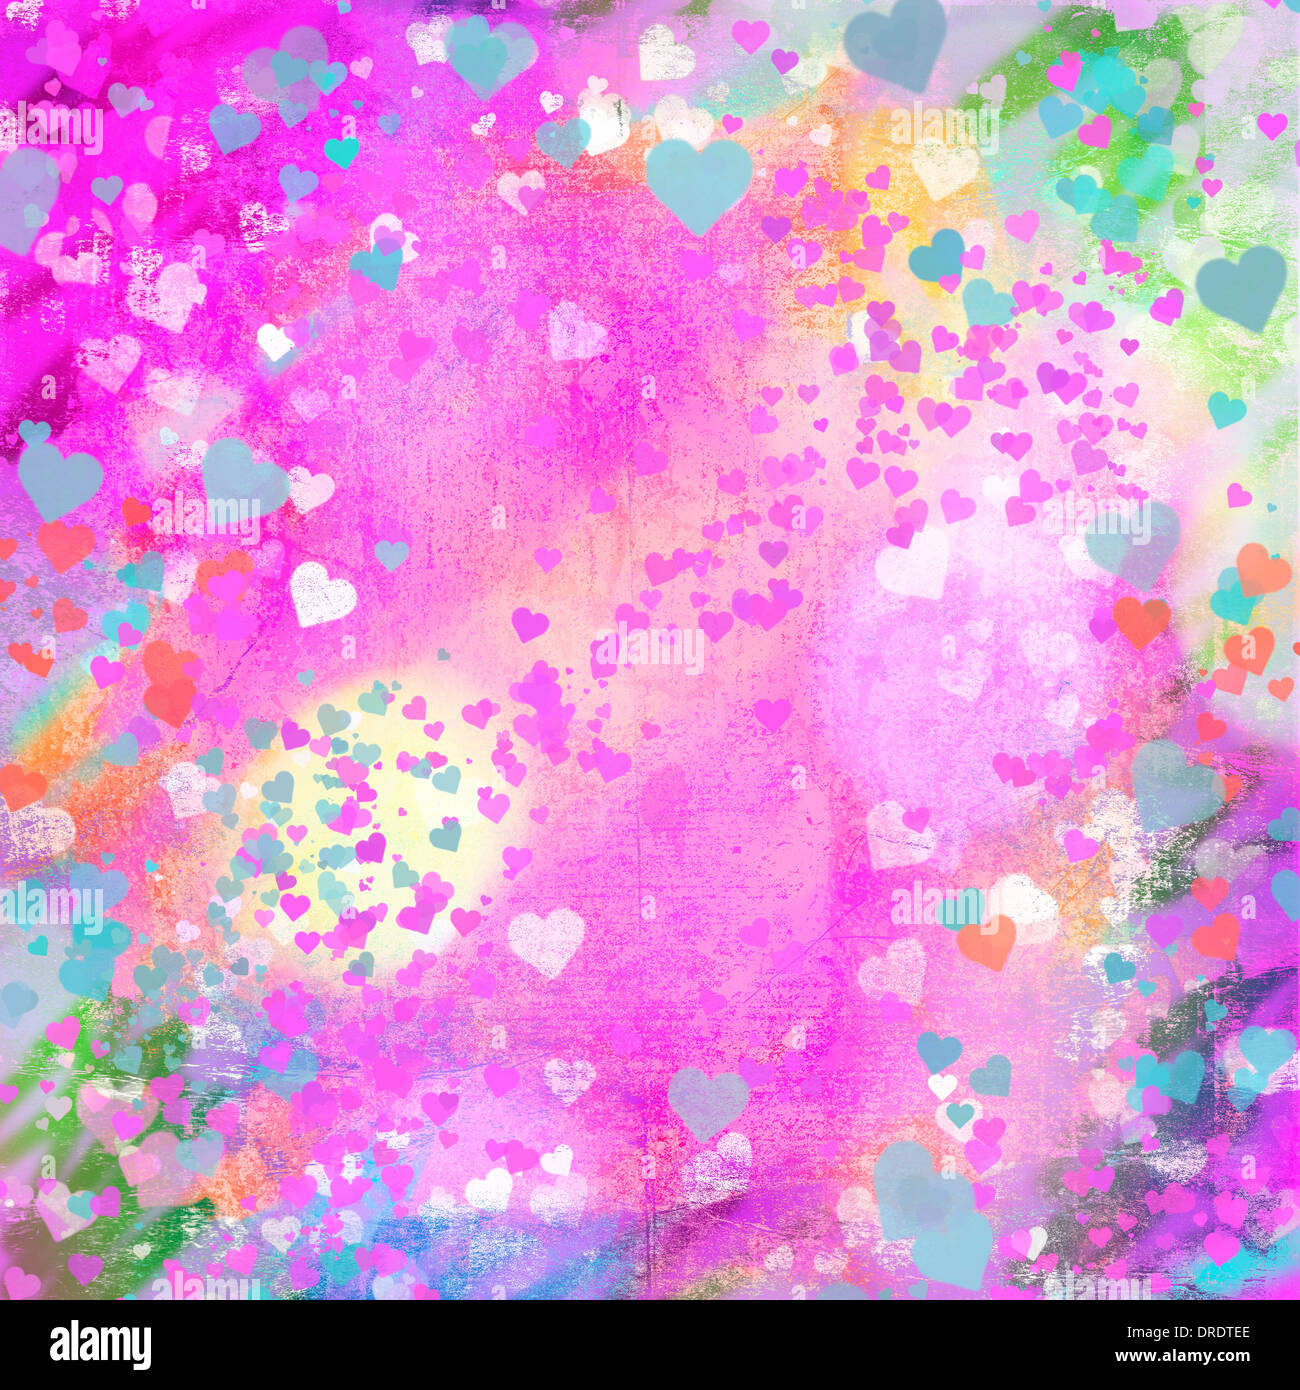 valentines-day-grunge-hearts-abstract-background-concept-illustration-DRDTEE.jpg